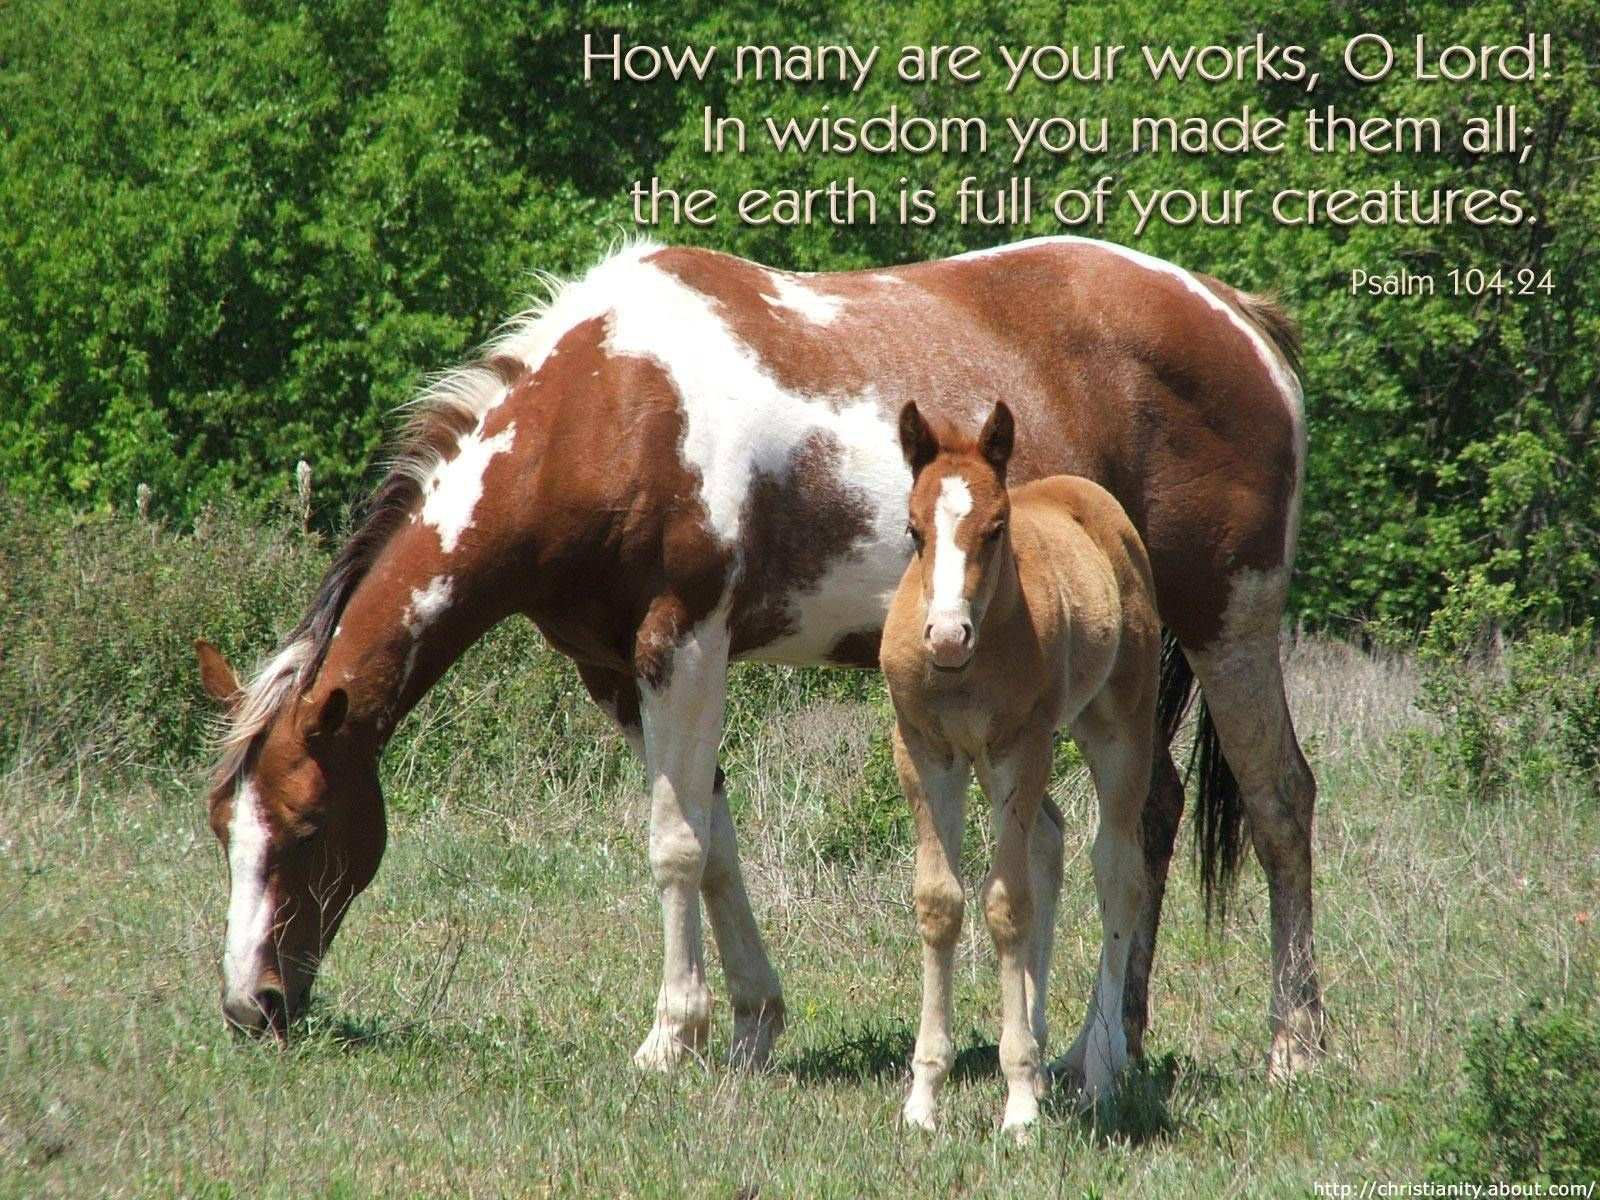 Must see Wallpaper Horse Bible Verse - 28e6c59301276418328fd81a9f9caf55  Image_366320.jpg